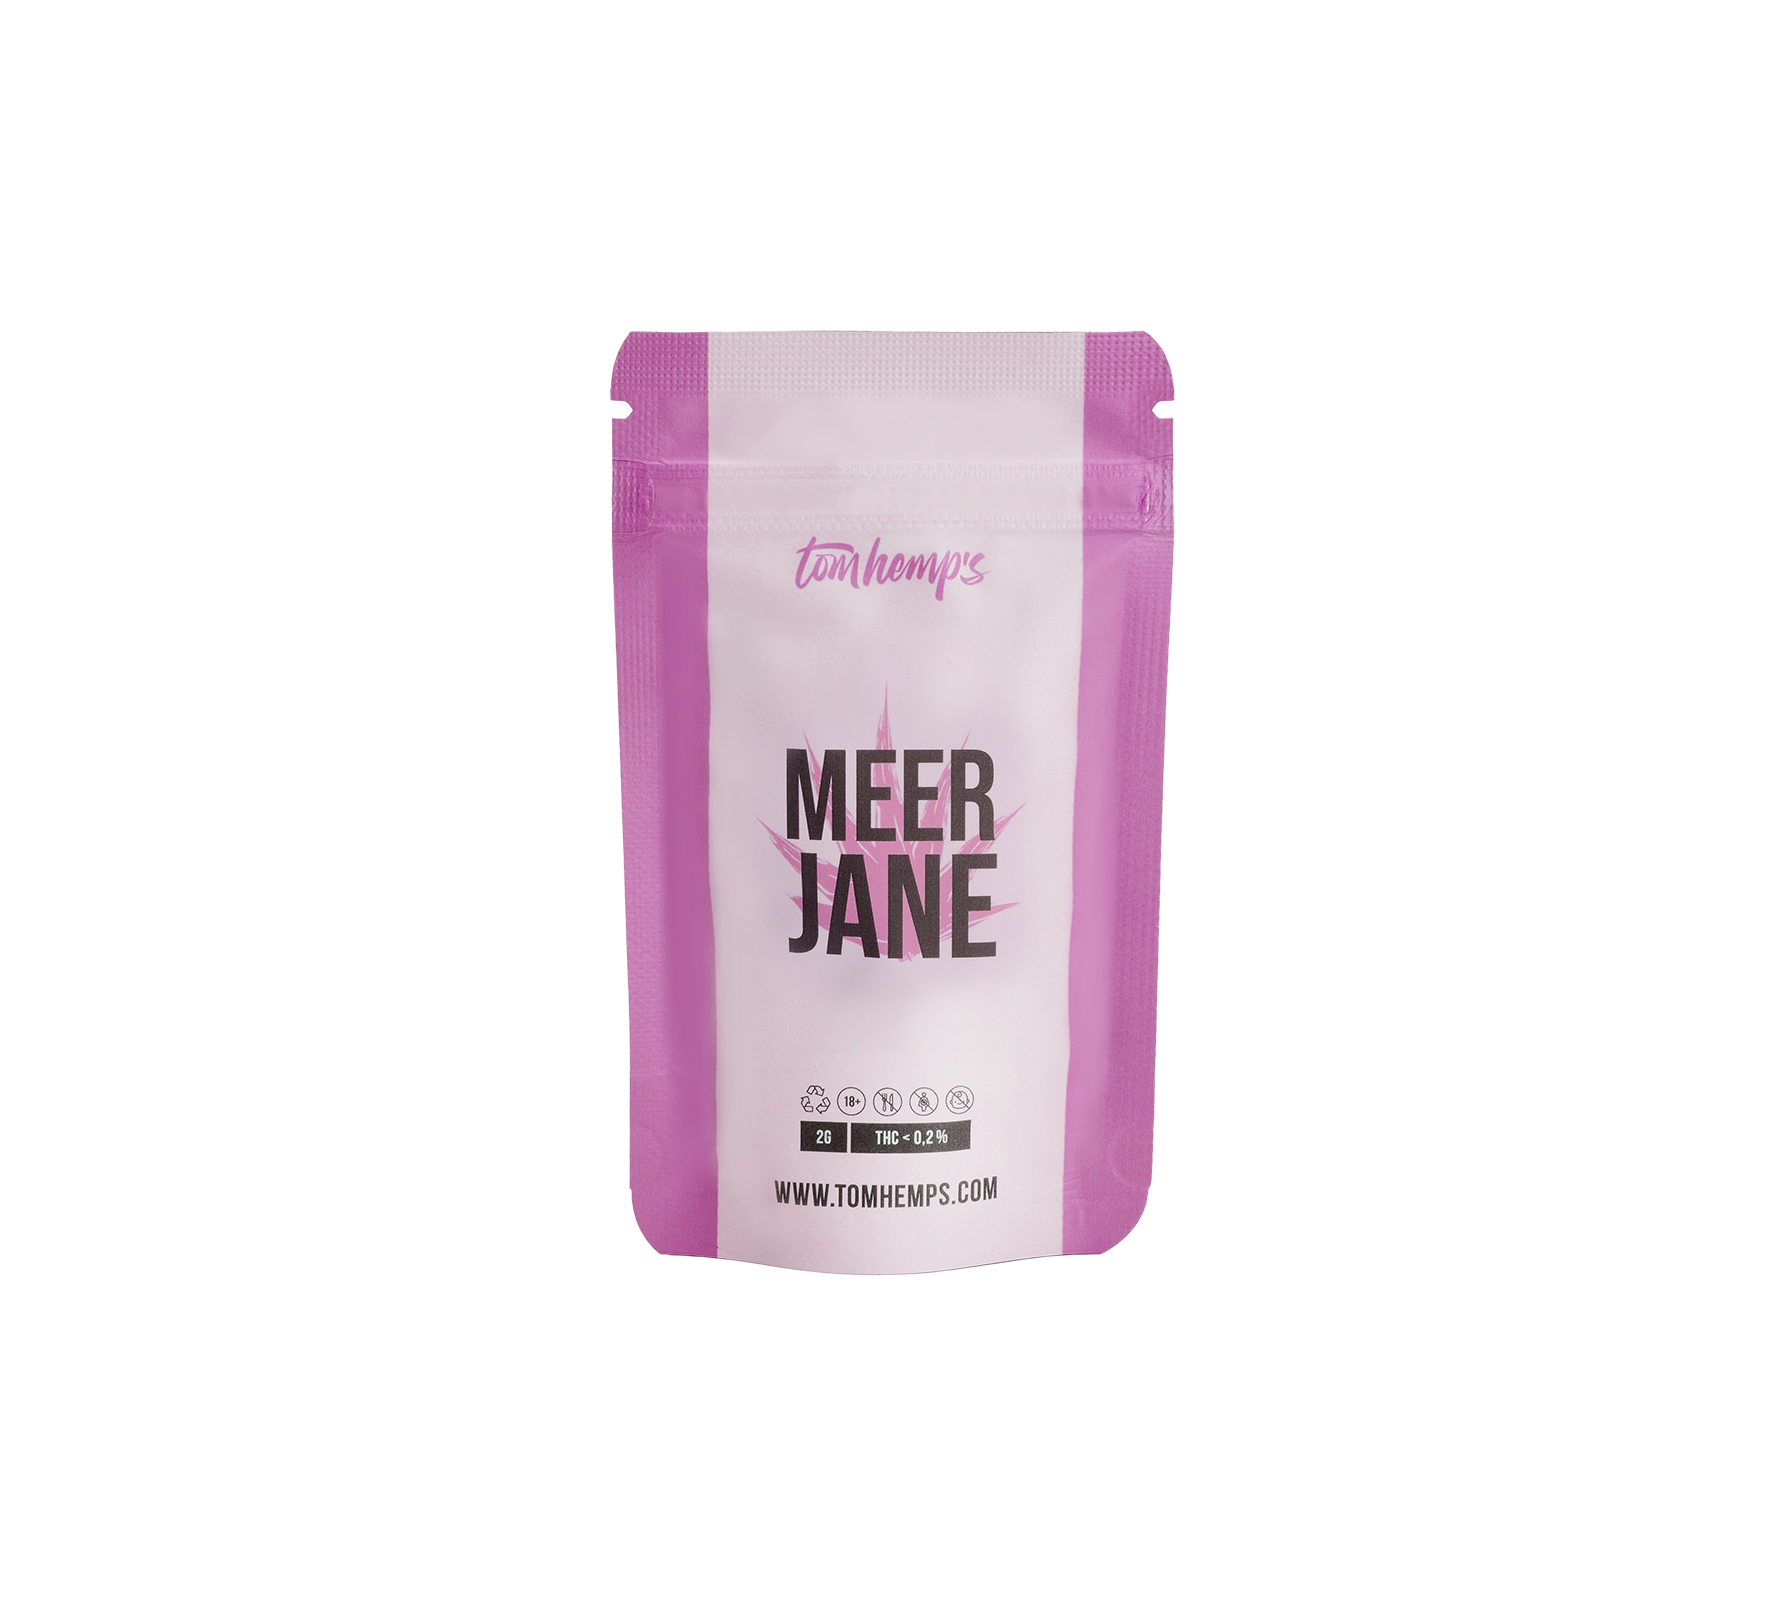 Tom Hemps Product Ecobags Mary Jane 2g